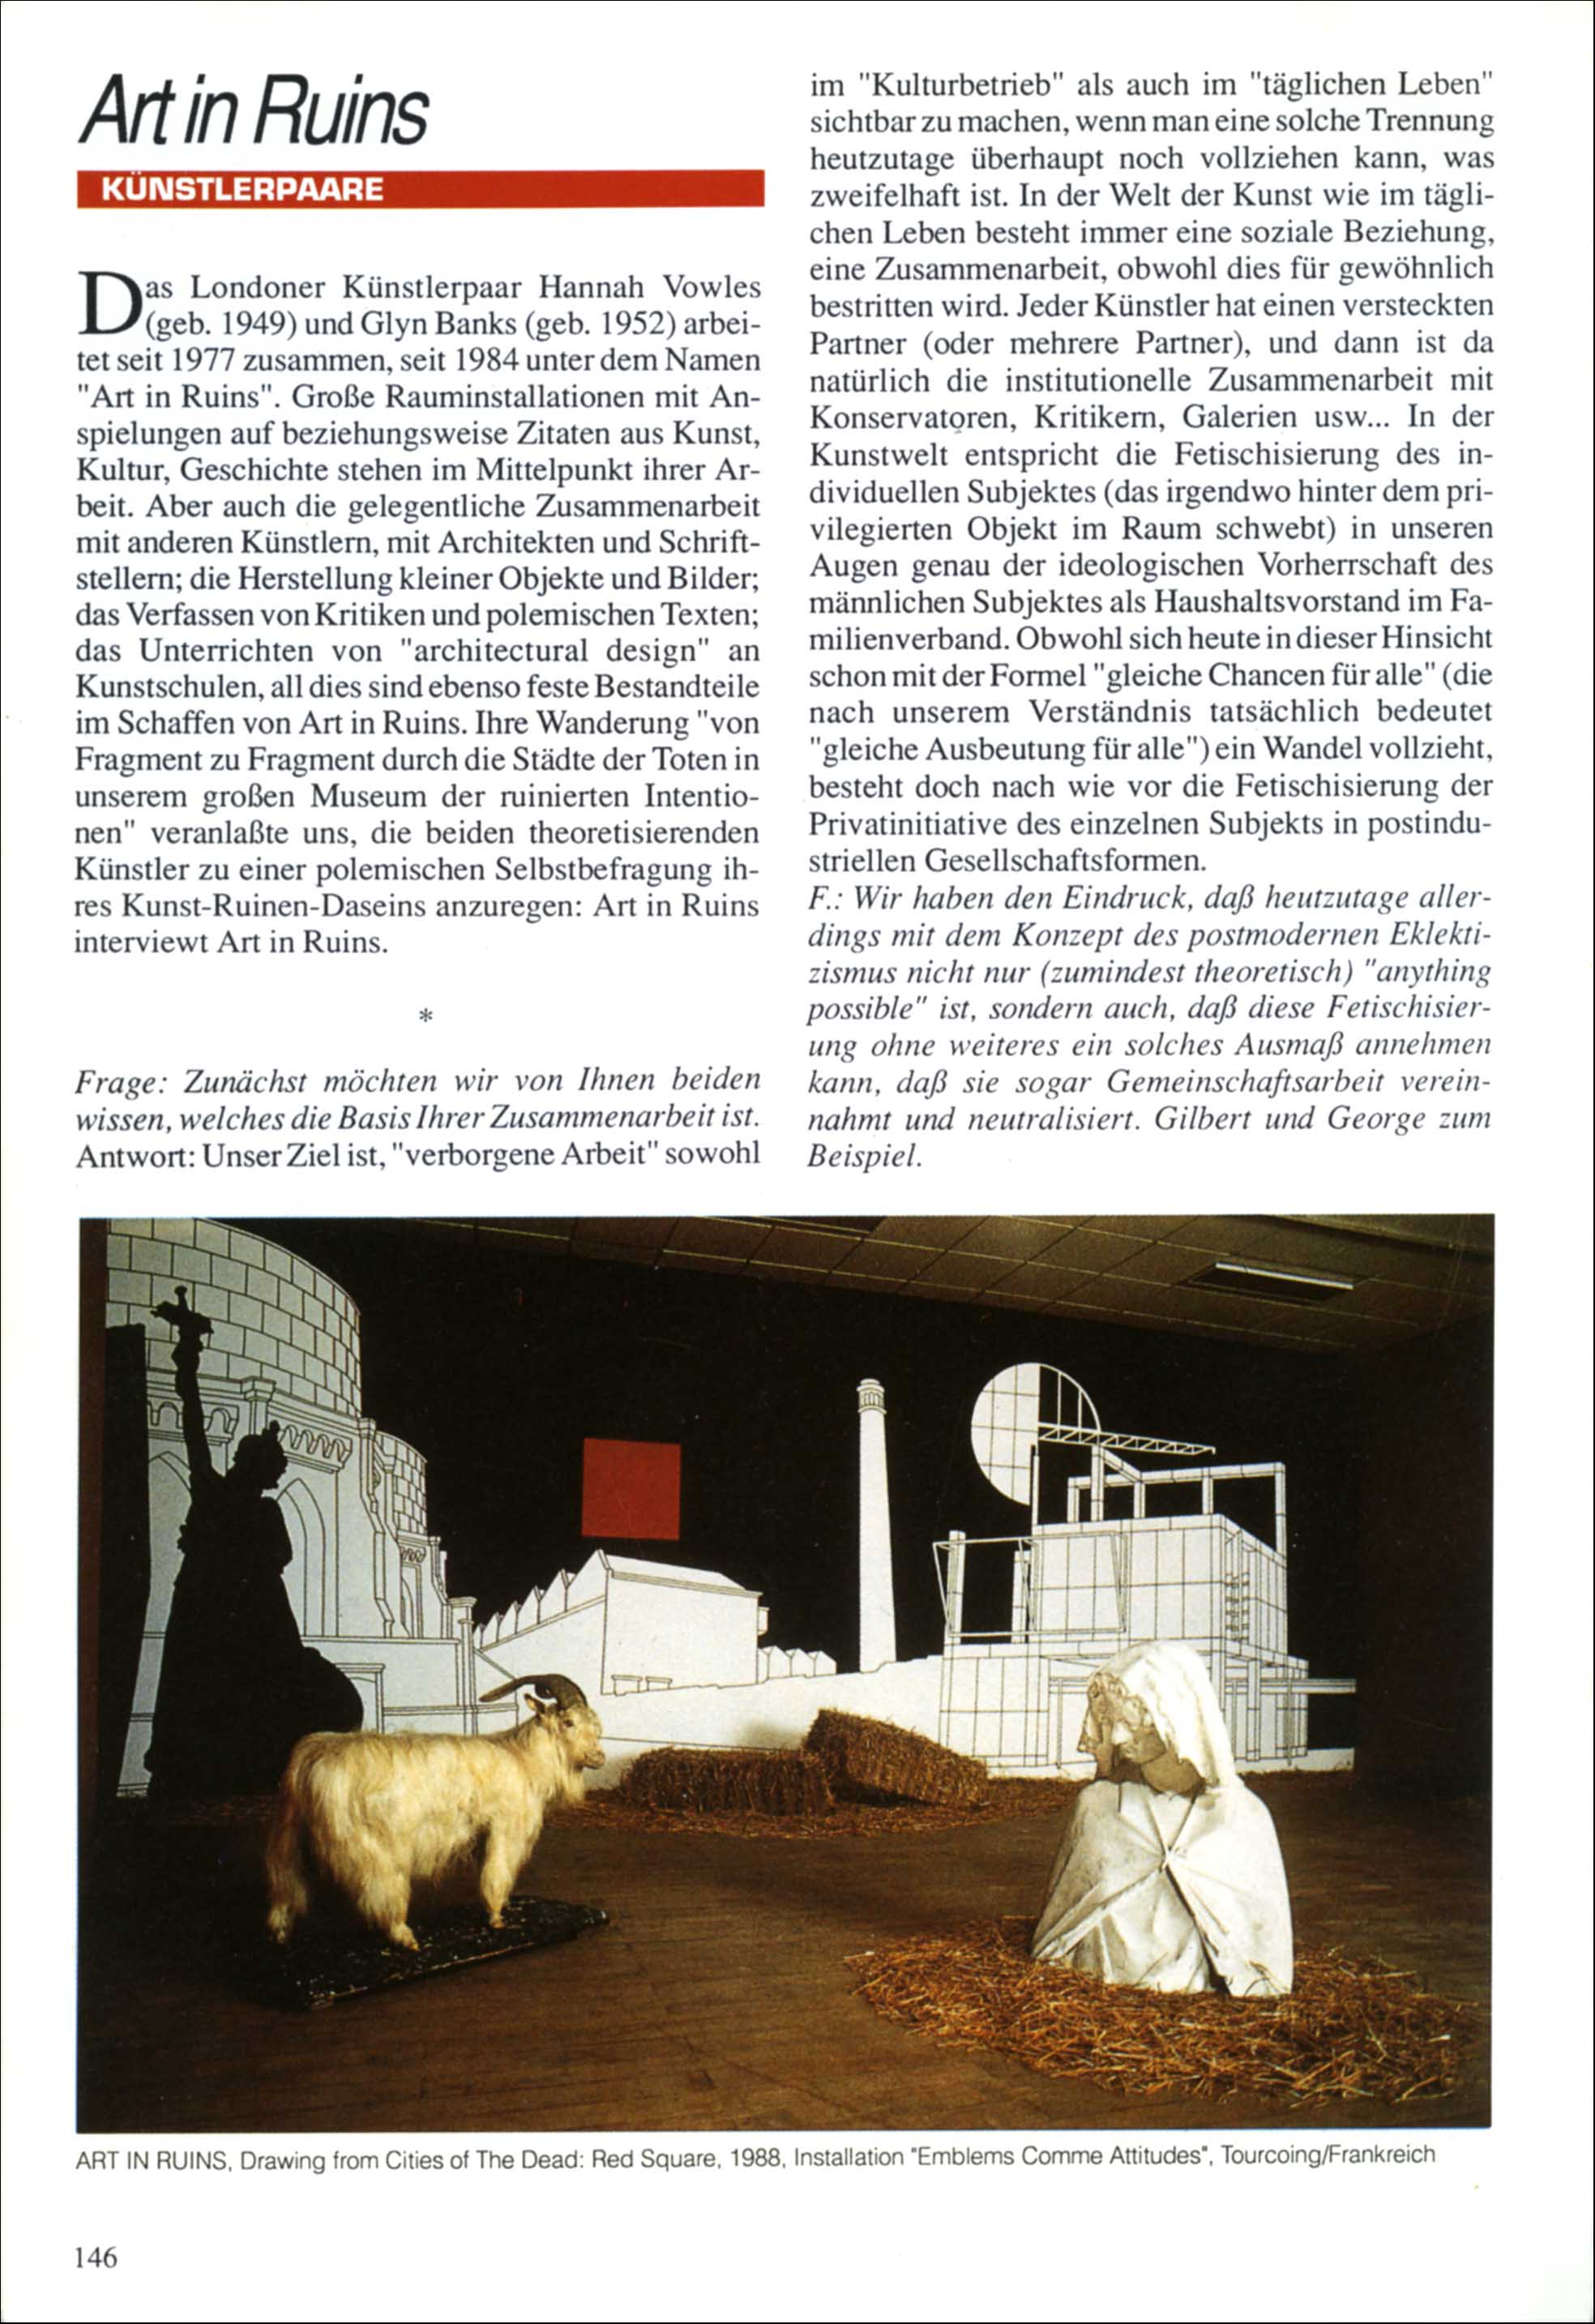 'ART IN RUINS INTERVIEW ART IN RUINS' Künstlerpaare Issue  Part 1 Ed.  Paolo Bianchi Kunstforum  No 106  Mar/April 1990